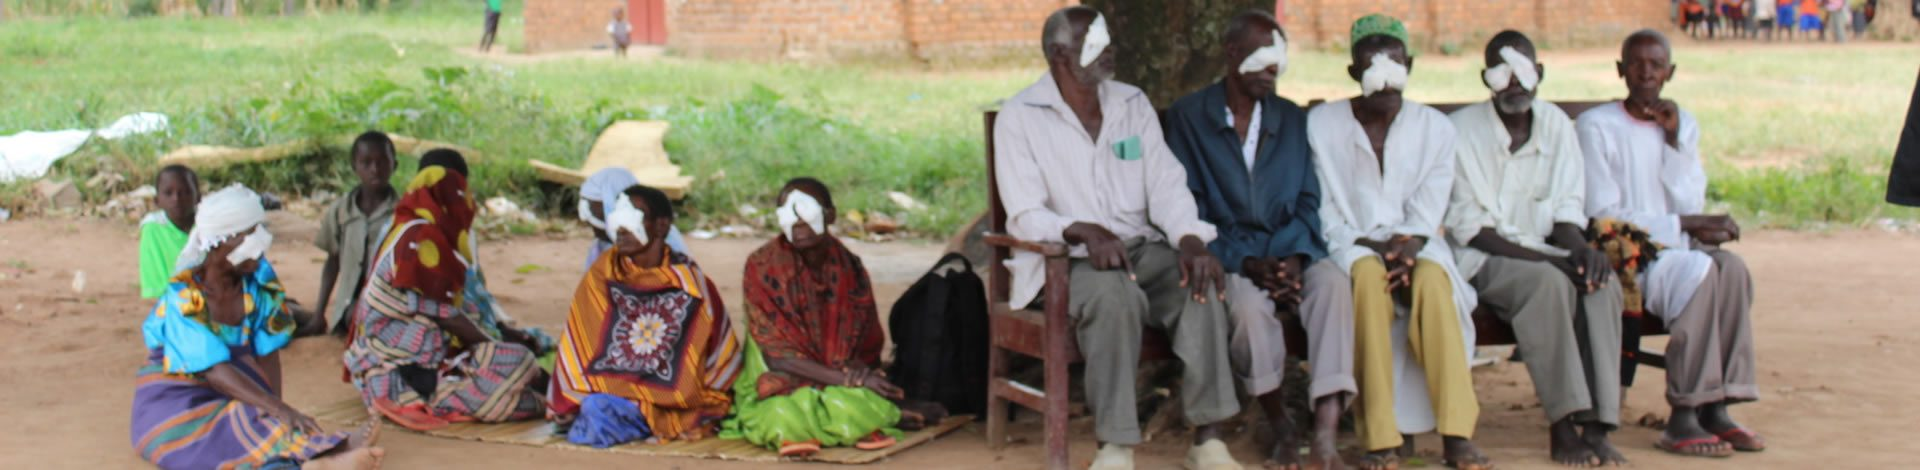 Joyce and other trachoma patients sit underneath a tree at Benedictine hospital with eye bandages on.